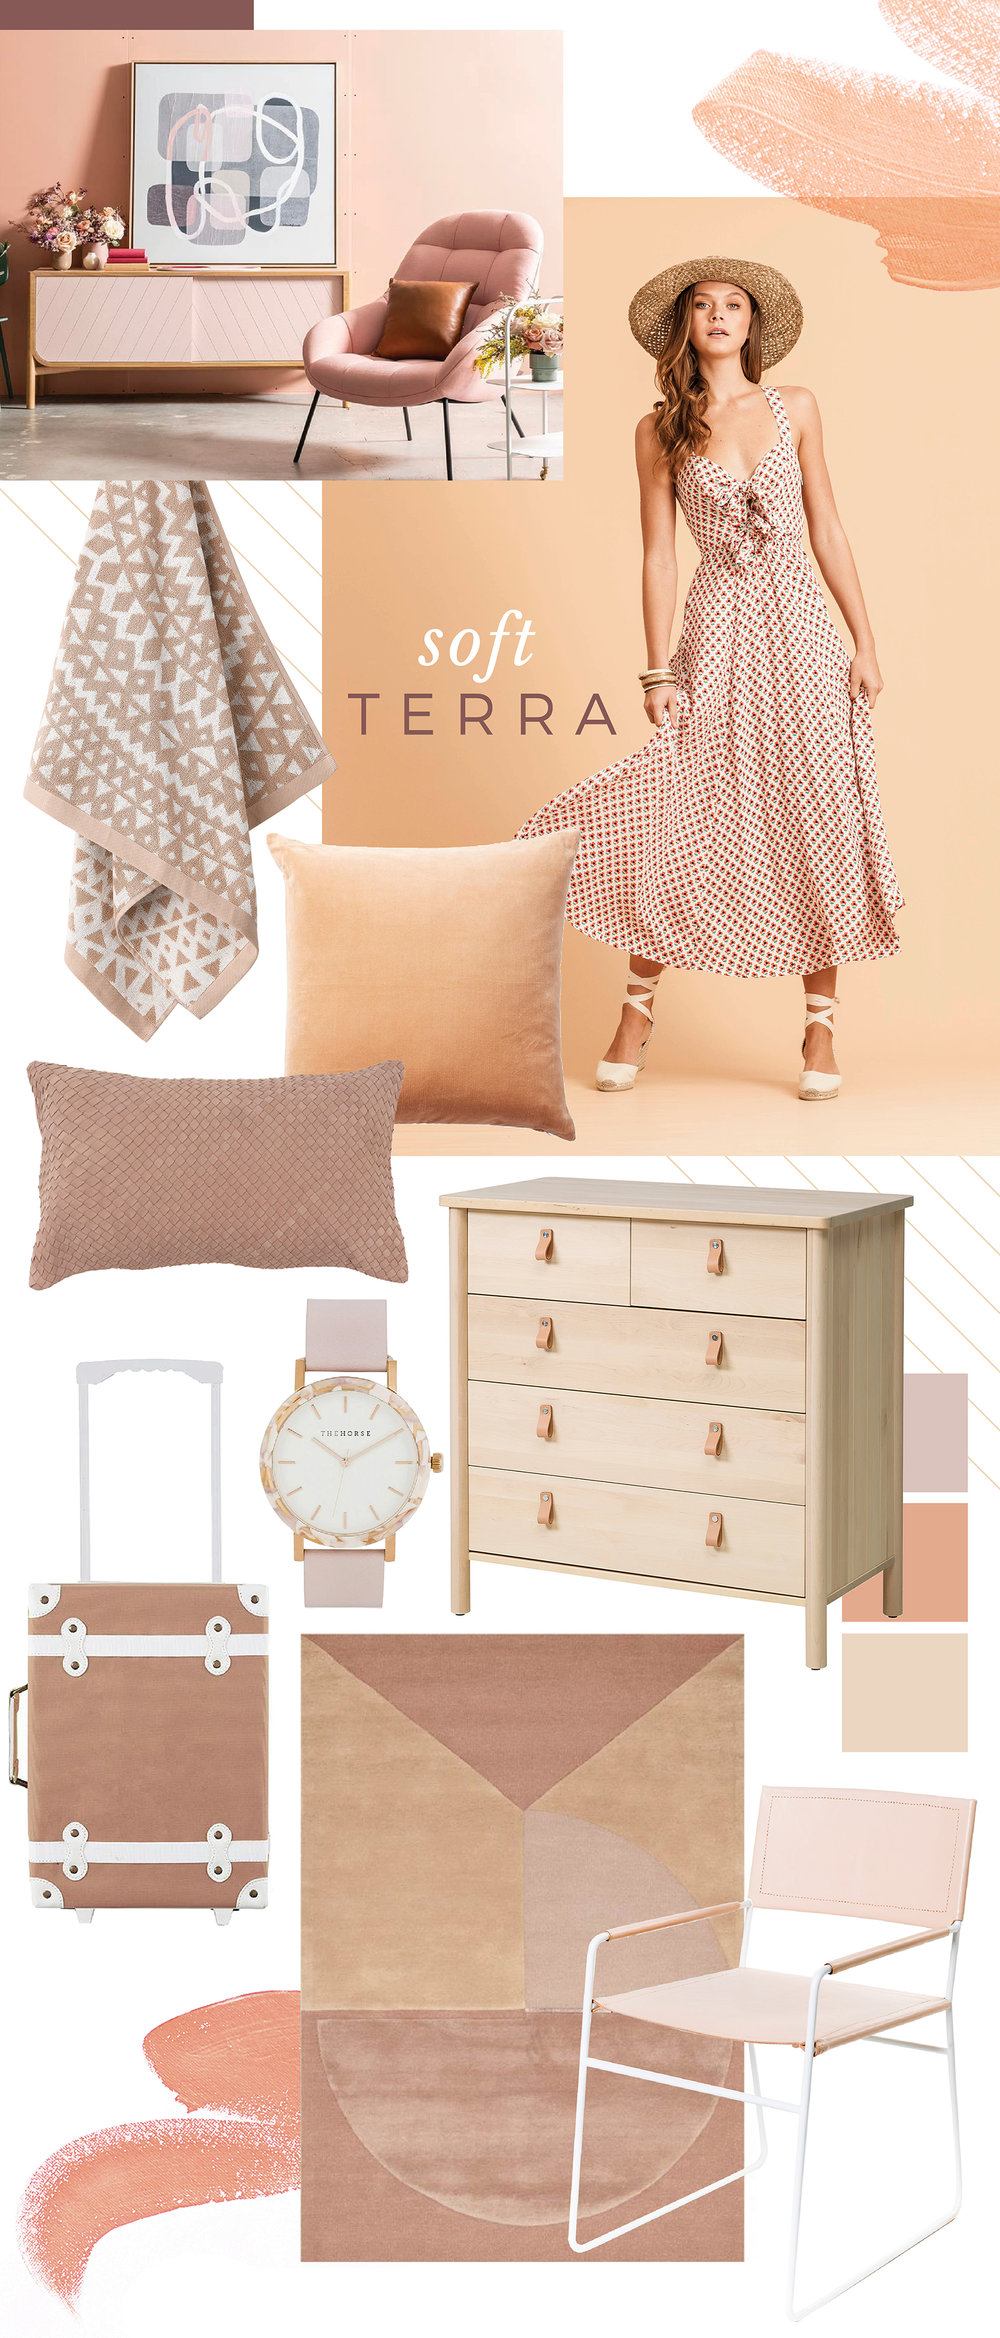 adore_home_blog_colour_trend_soft_terra_terracotta-blush_pink.jpg